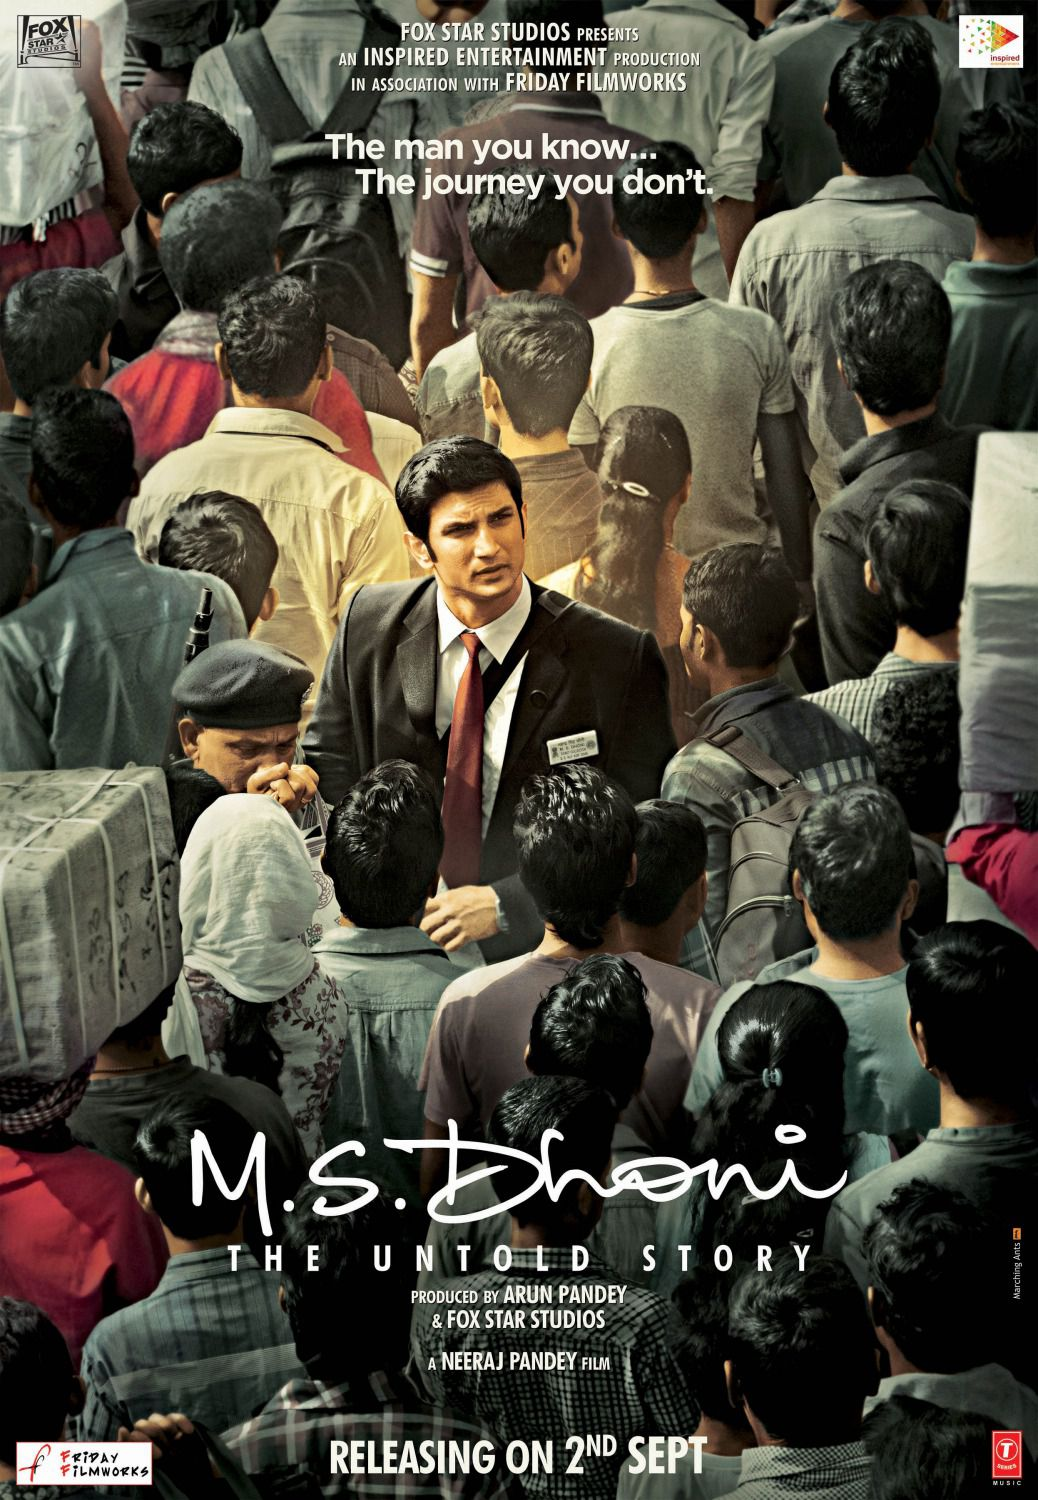 M.S. Dhoni the untold story